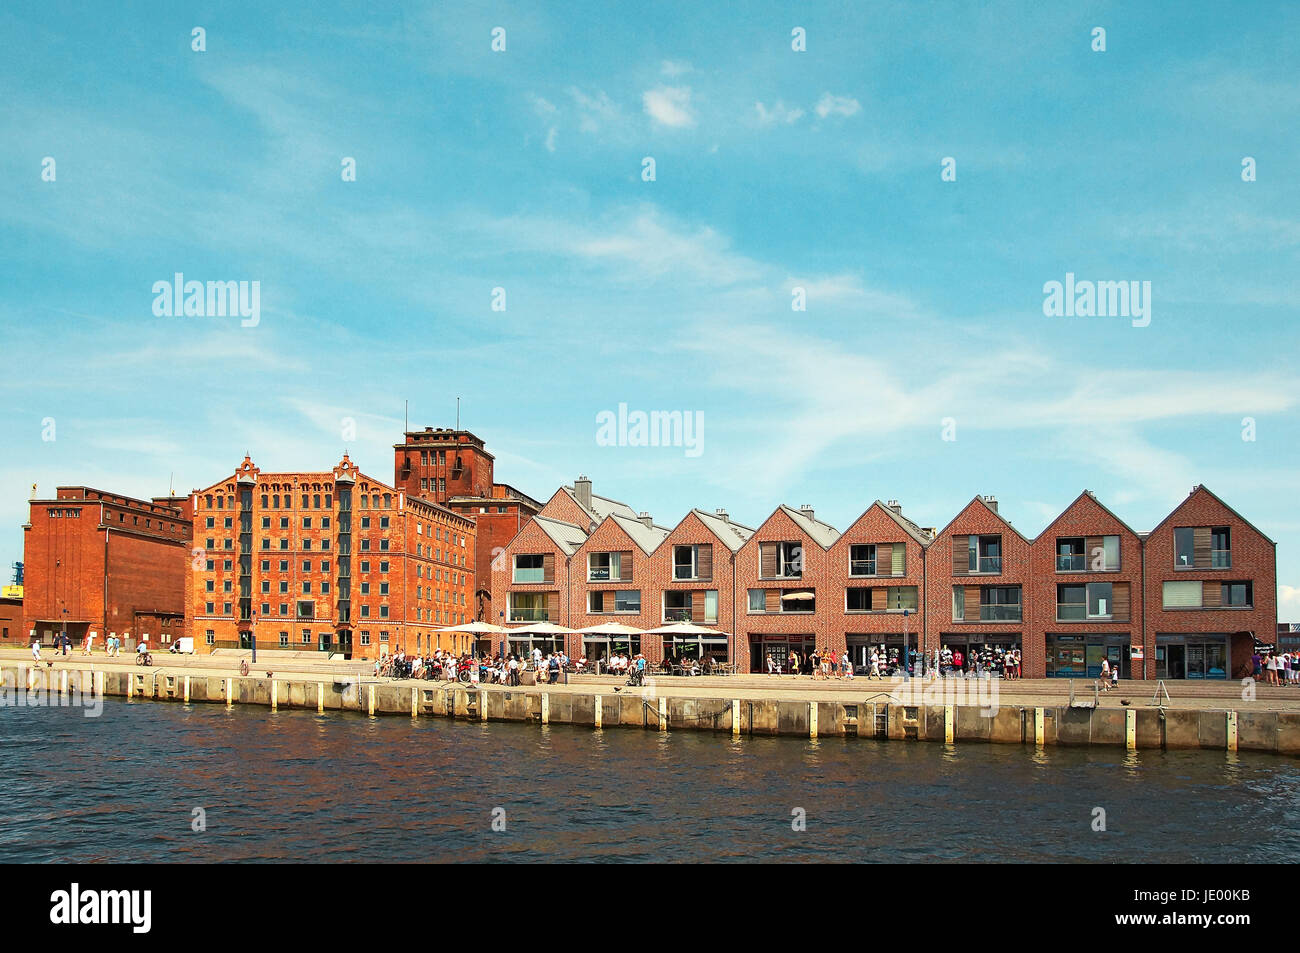 Hafen Hansestadt Wismar Deutschland / Port Hanseatic City Wismar Germany Stock Photo